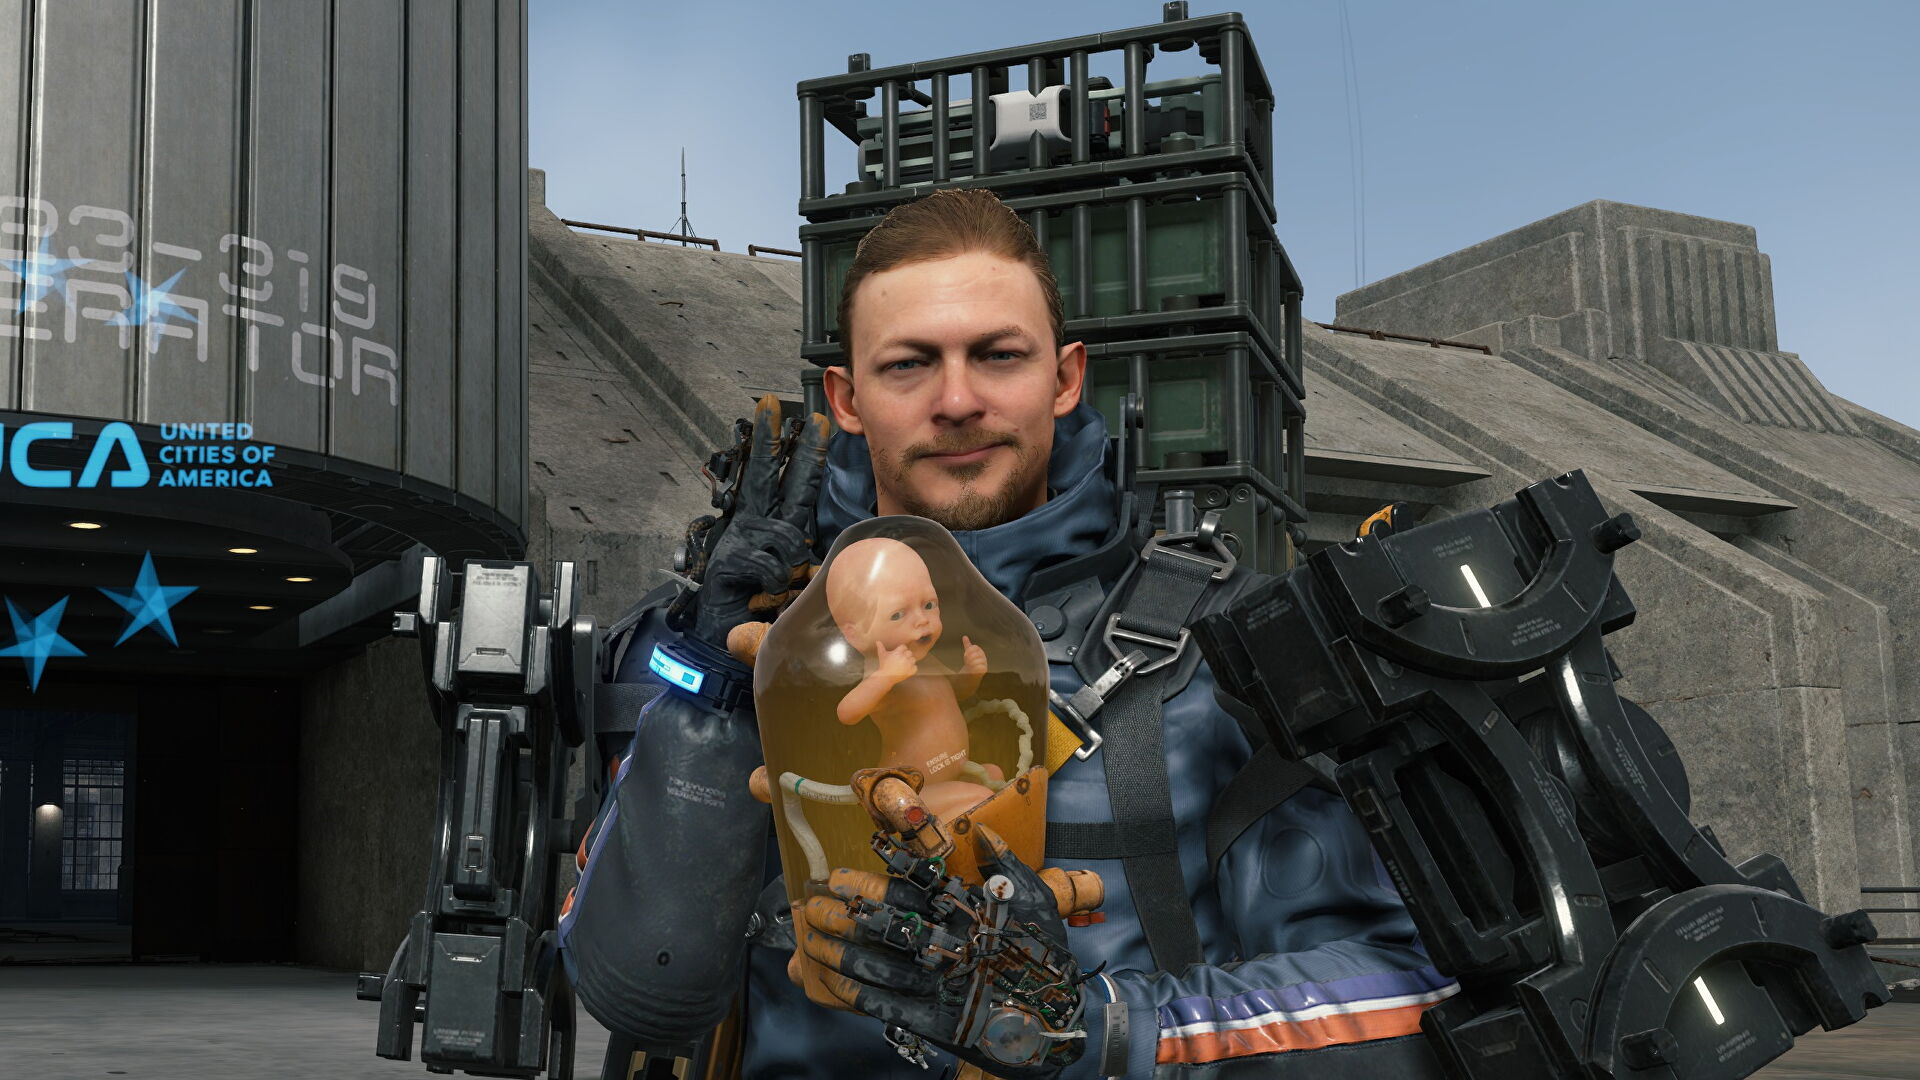 The Death Stranding books made me realise how much gameplay can impact story